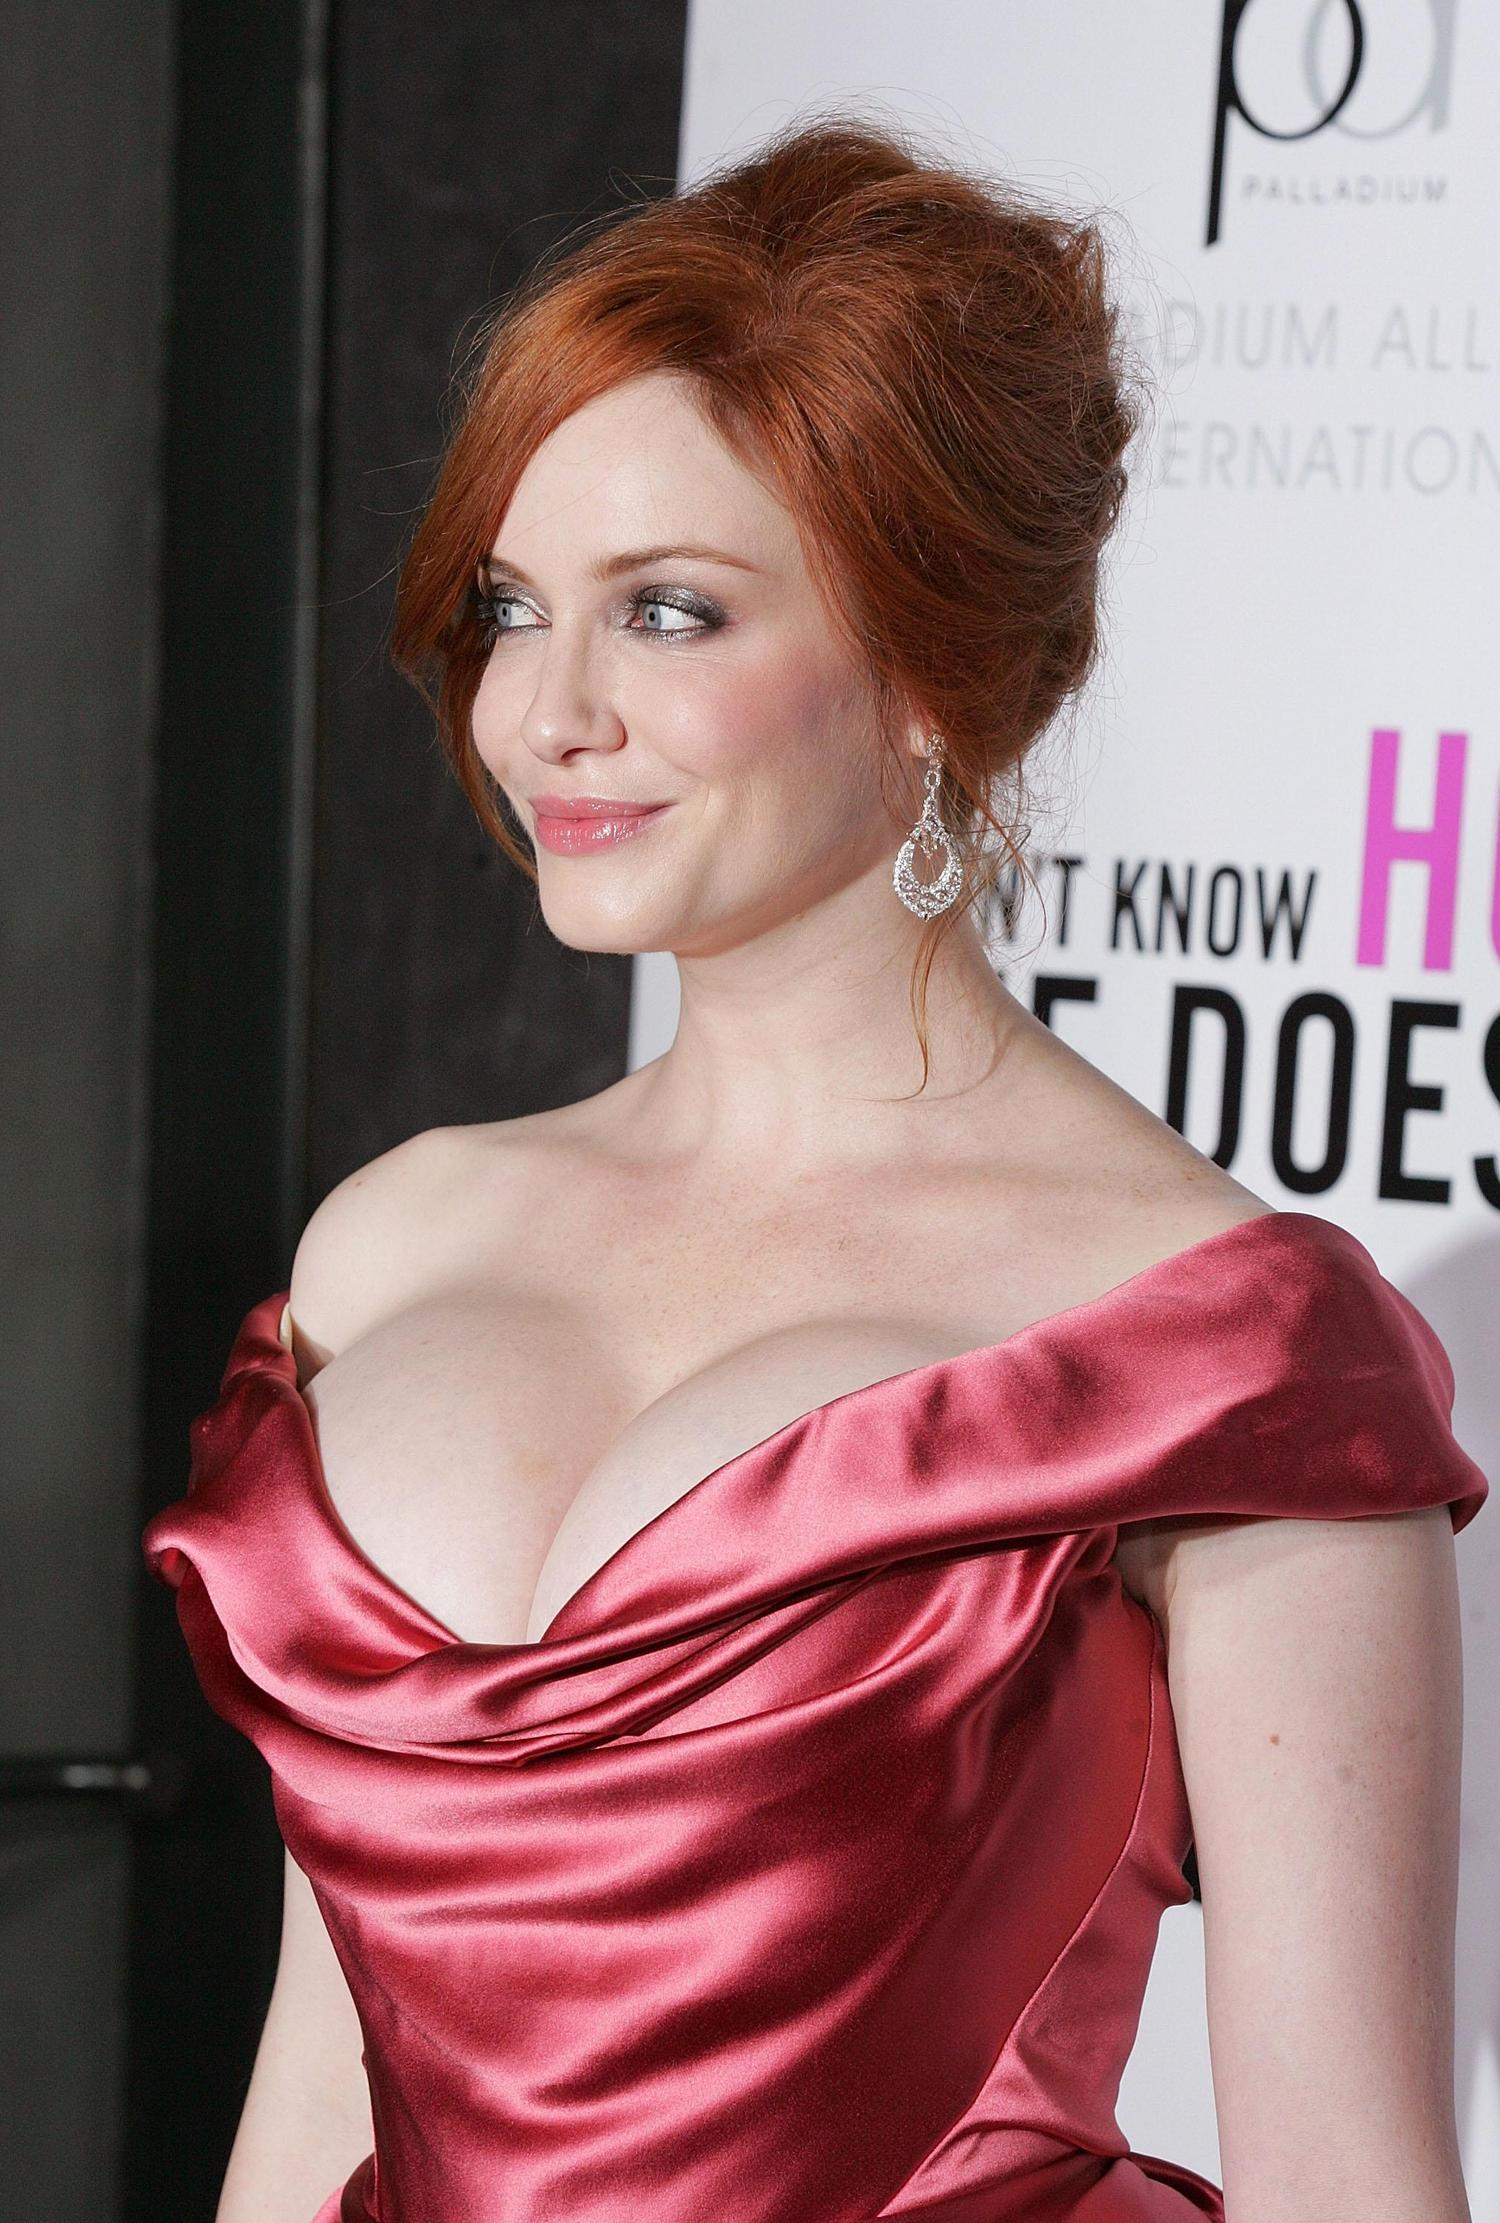 61 Hot Pictures Of Christina Hendricks - Perfect For